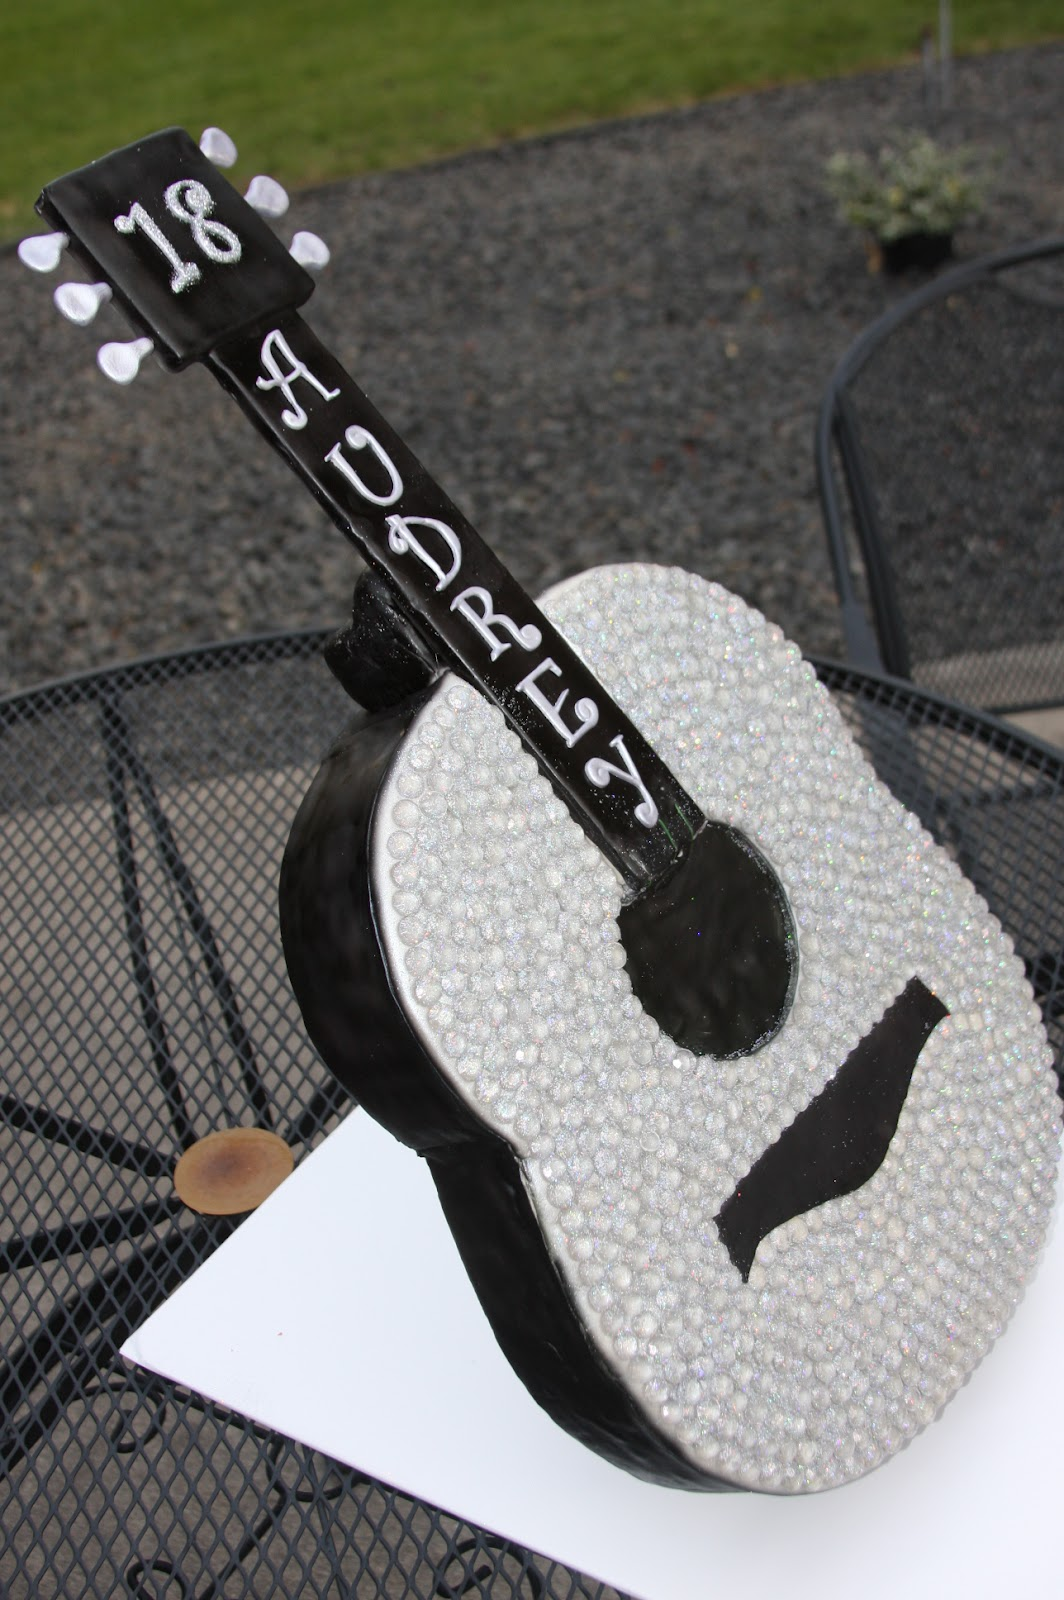 Guitar cake taylor swift guitar and edible glitter on pinterest